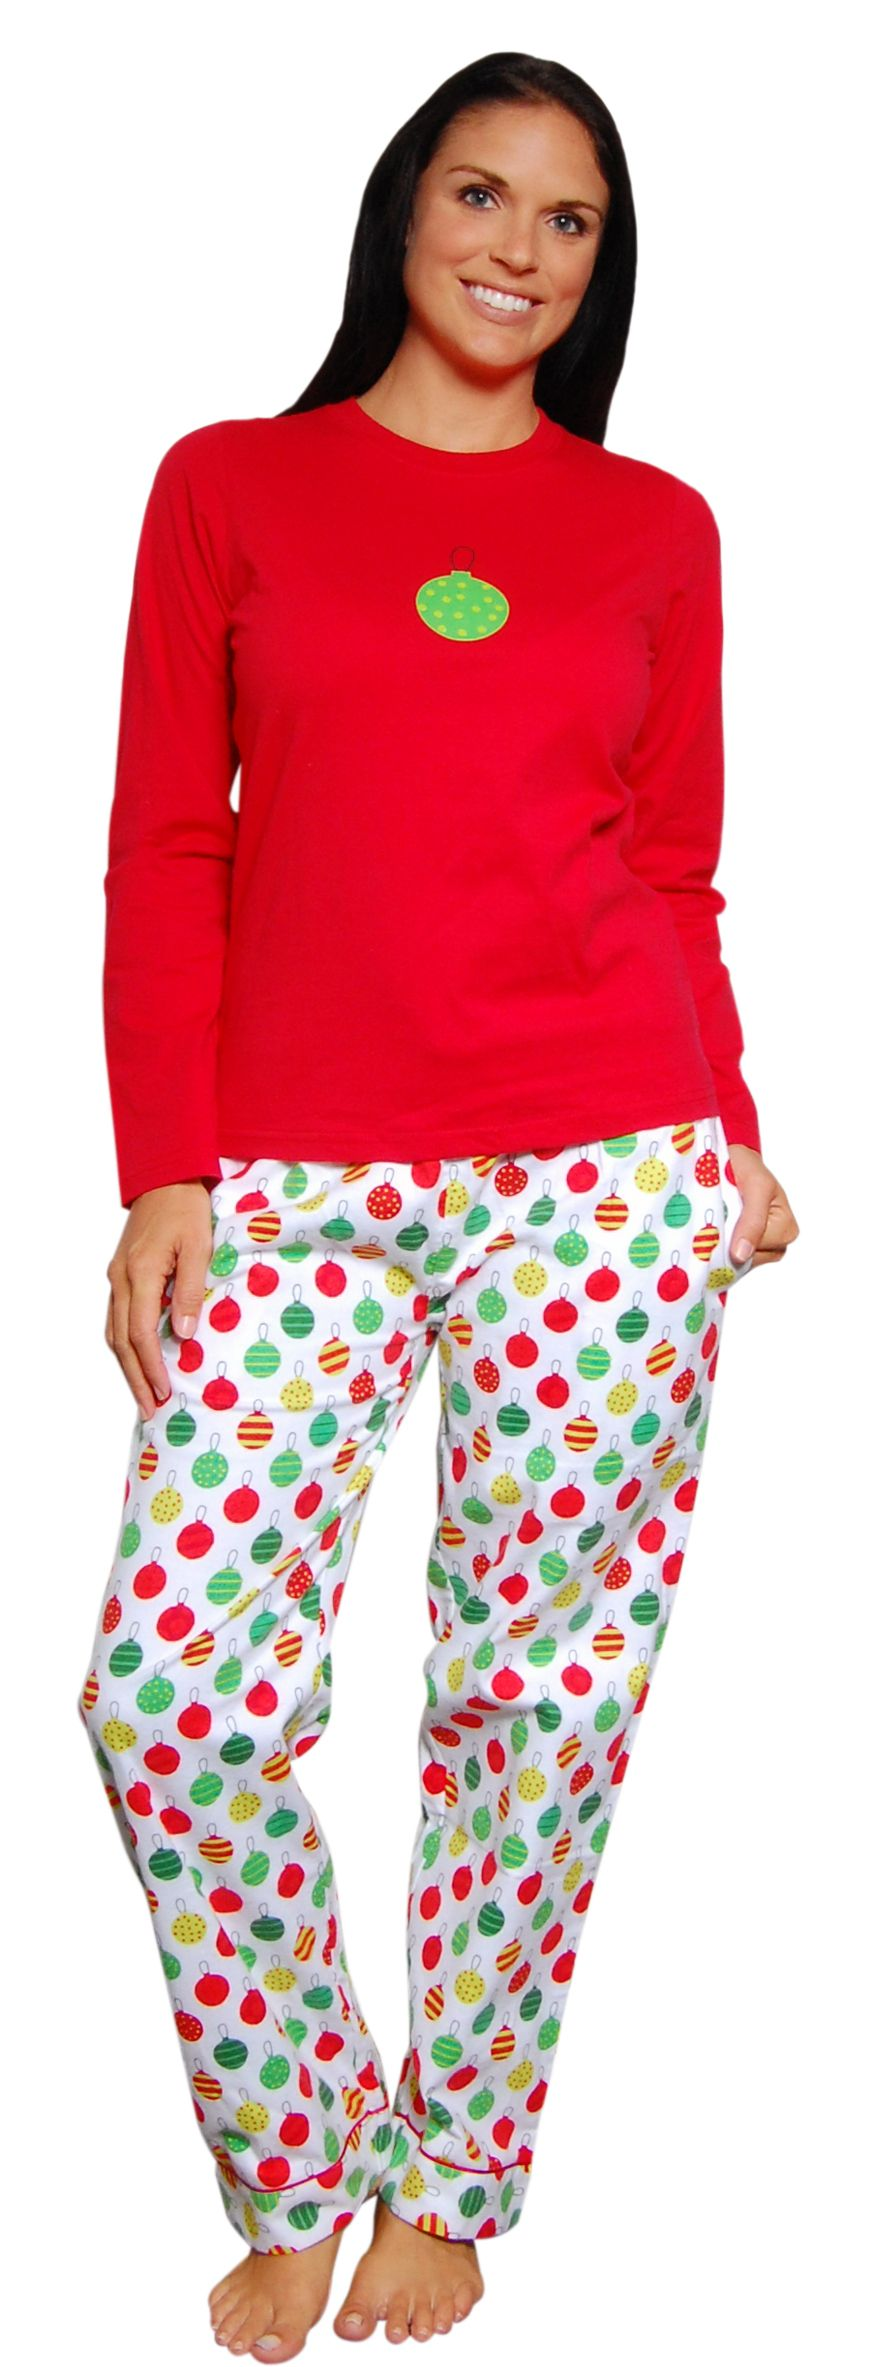 17 Best images about Christmas Pajamas on Pinterest | Button up ...